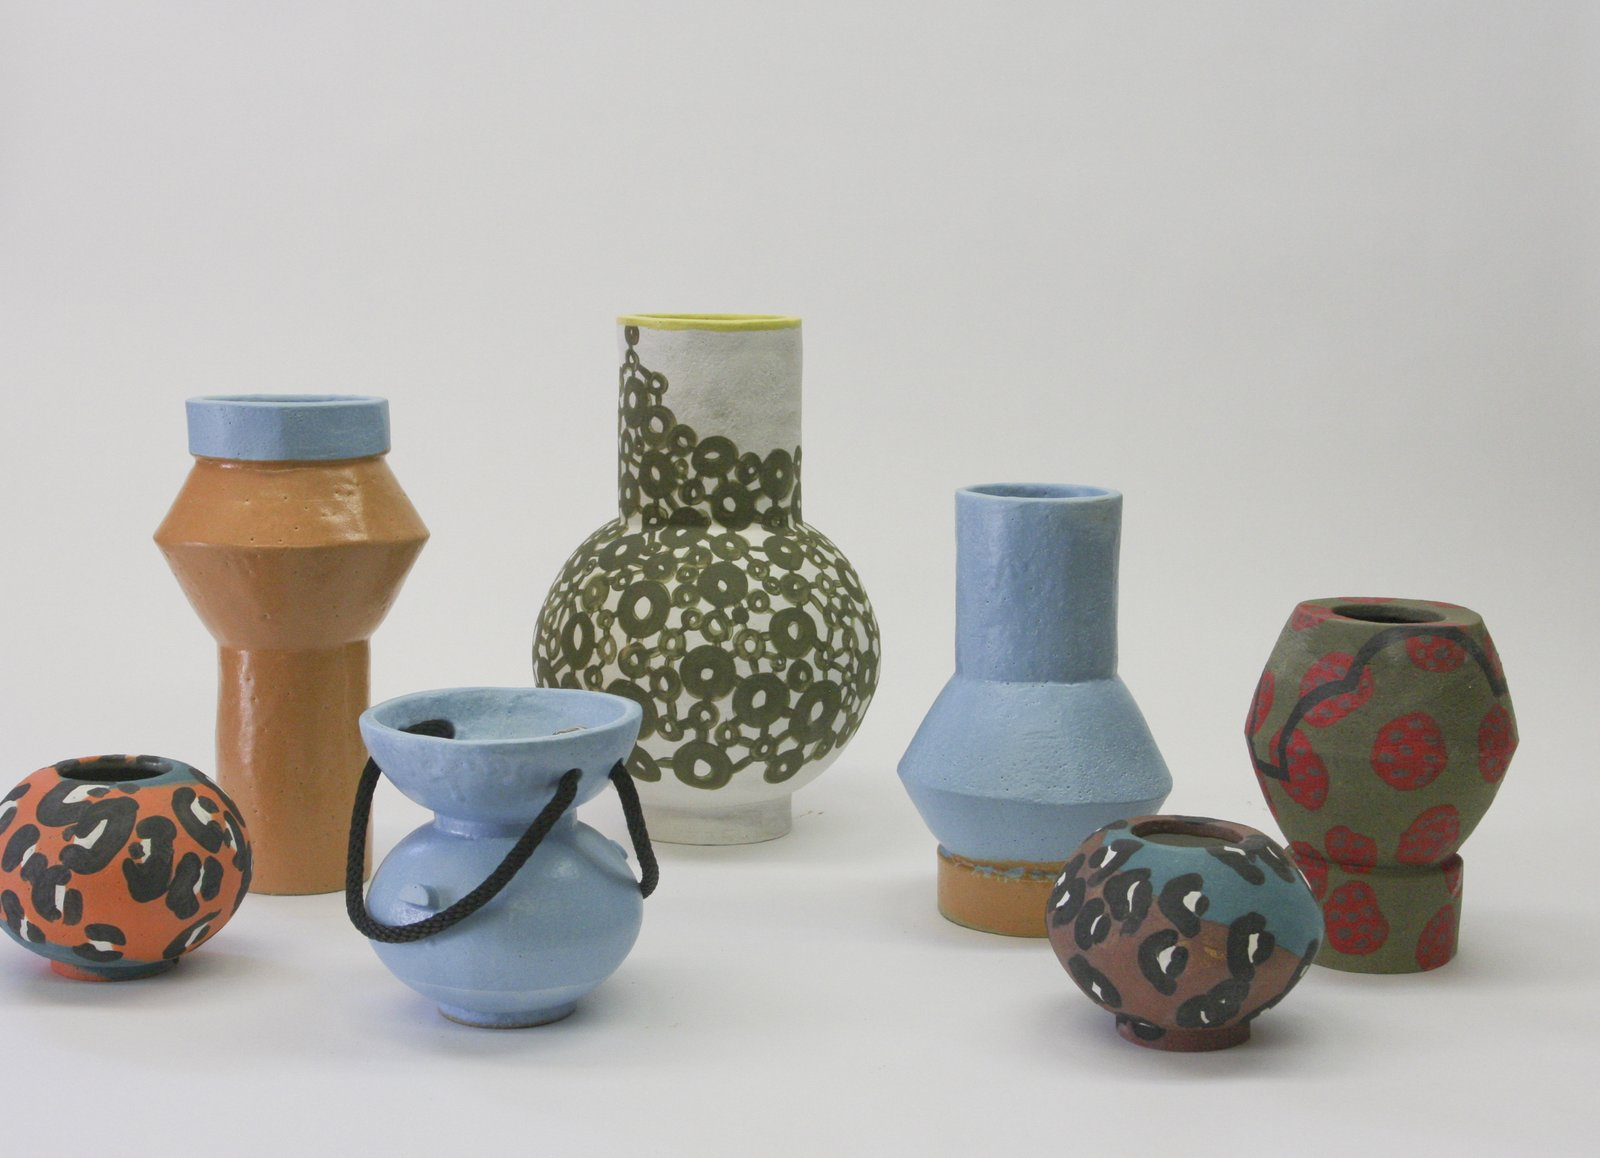 Photo 1 of 4 in Ceramicist Bari Ziperstein Teams With Rachel Comey for  a Sartorial New Collection